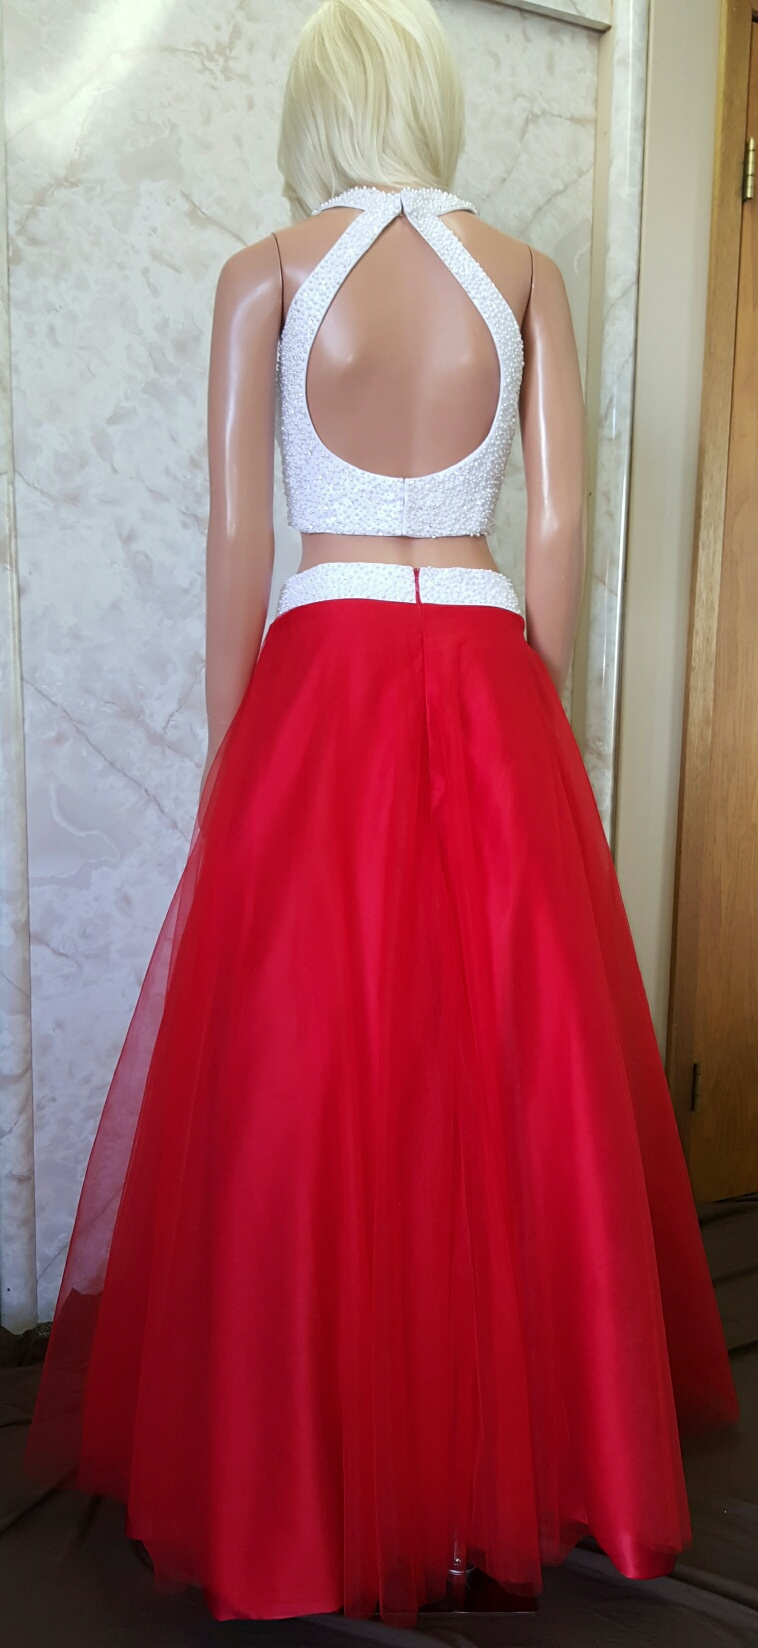 Red and white crop top prom dress.